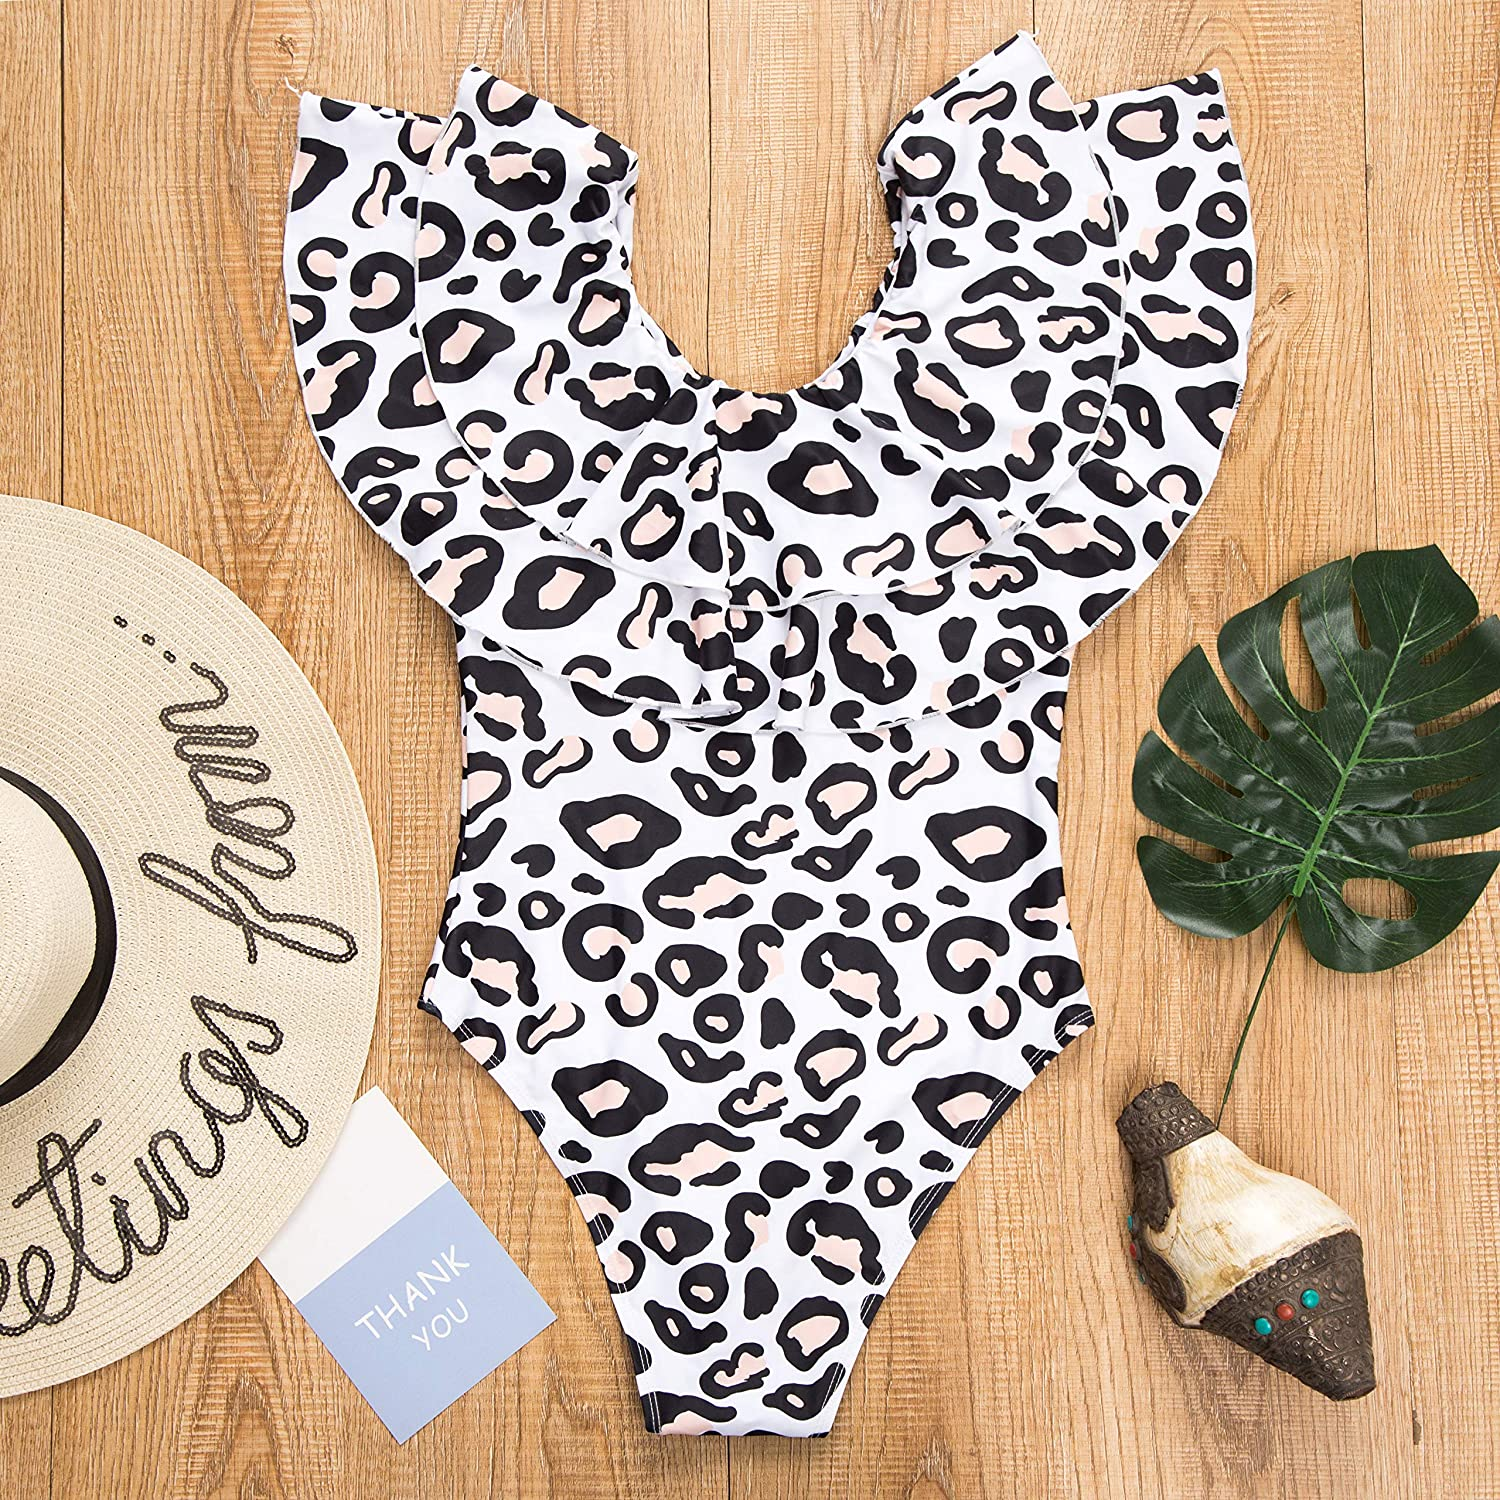 AMILIEe Mommy and Me One Piece Monokini Ruffle Flounce Swimsuit Family Matching Leopard Print Swimwear Bathing Suit